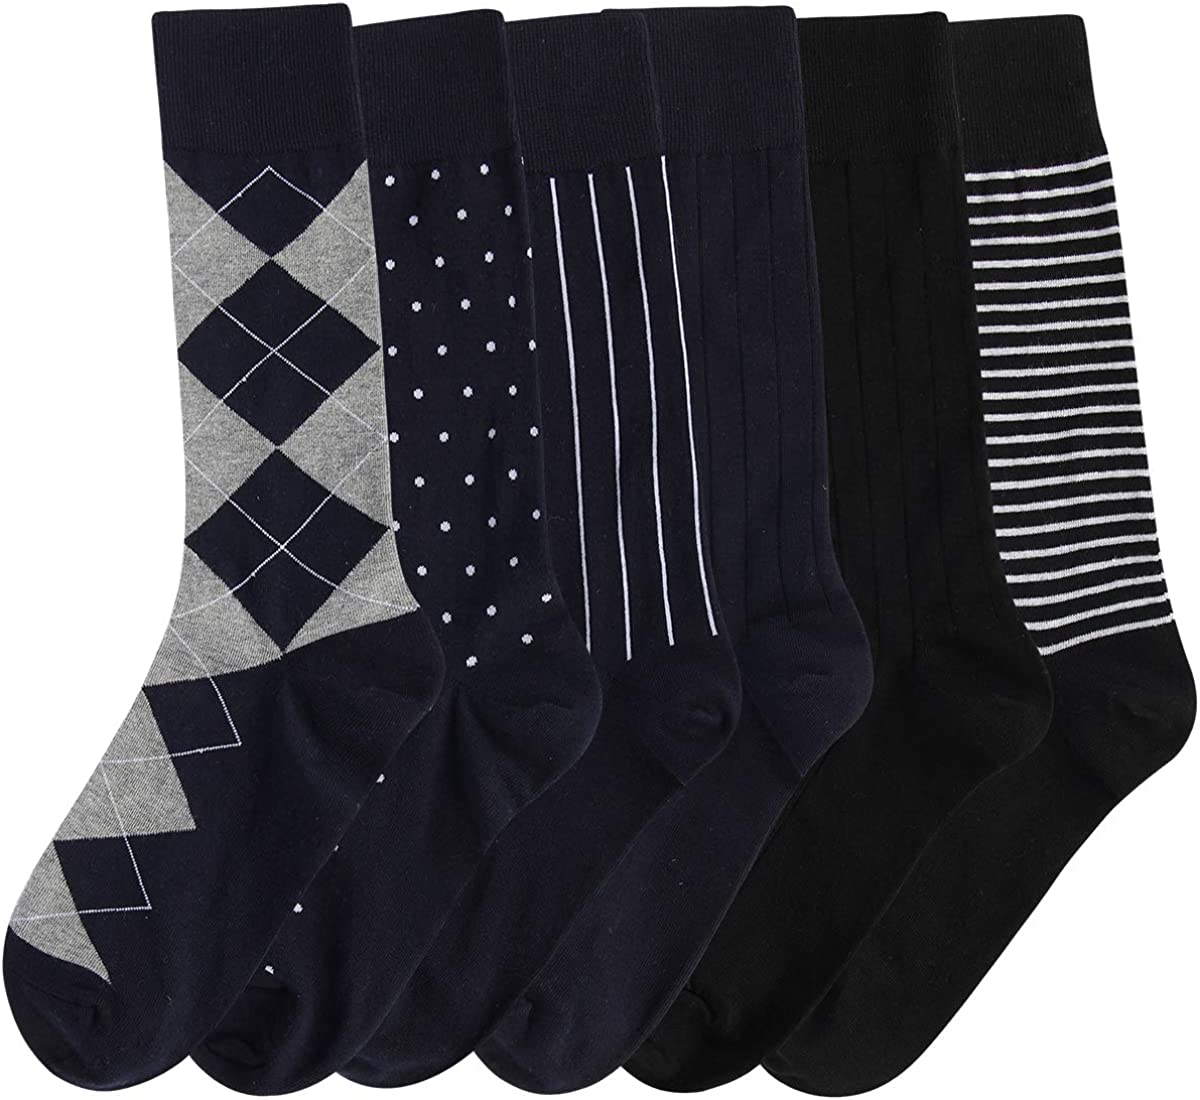 Heatuff Mens Cotton Dress Socks Comfortable Crew Seamless Toe Flat Sock 6 Pairs